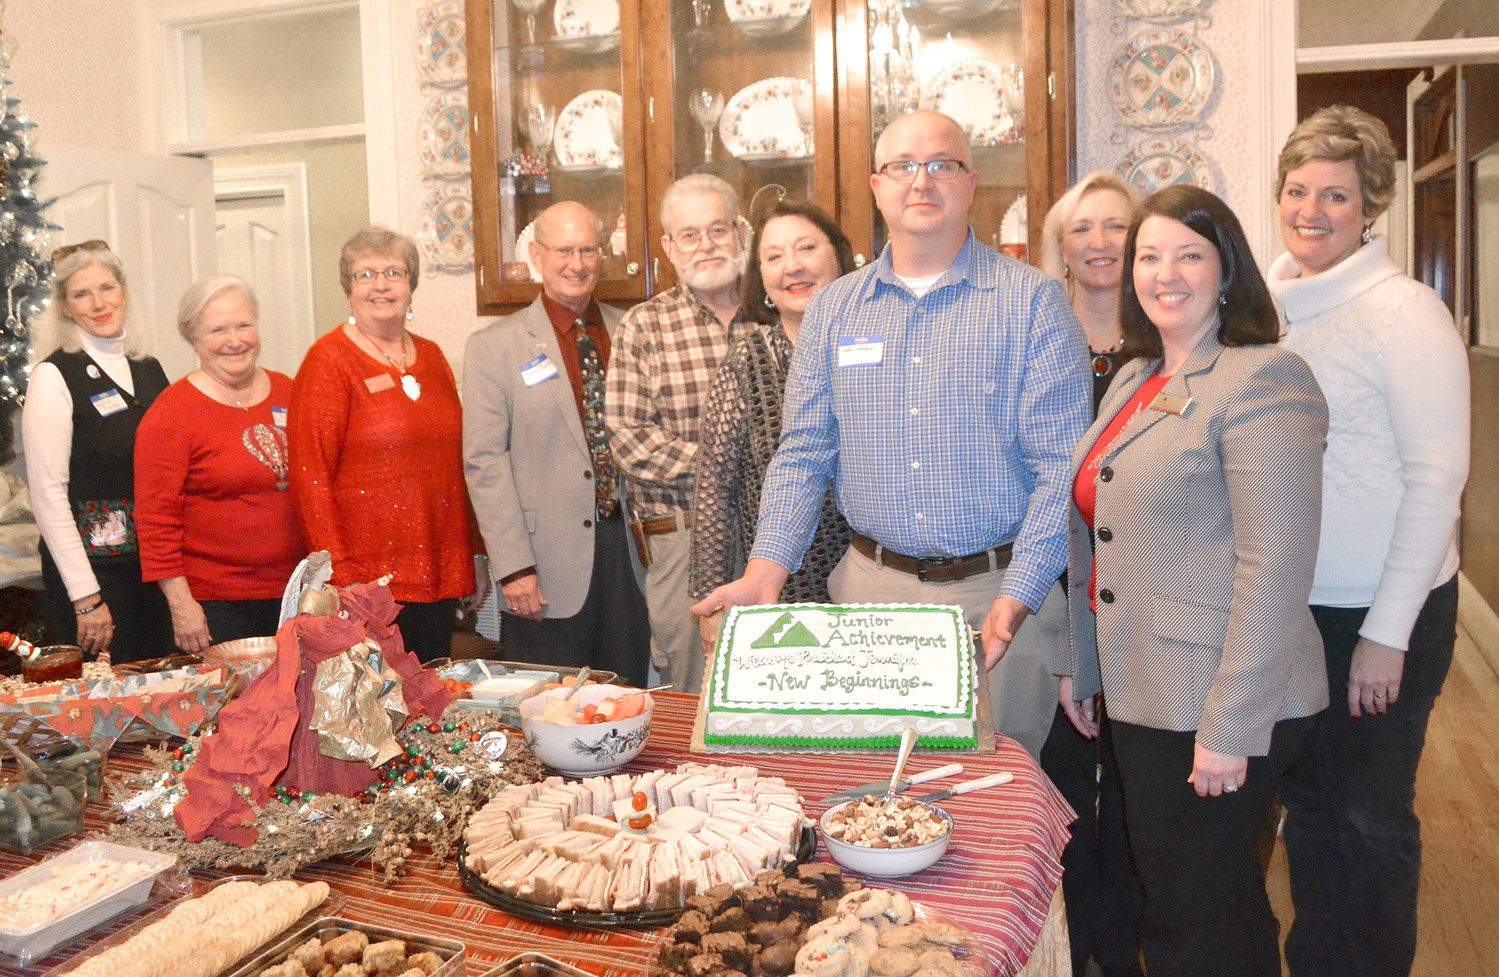 BOARD MEMBERS recently held a reception for new Junior Achievement of the Ocoee Region President Jennifer Pennell-Aslinger at the home of David and Margaret Schenck. From left are Kellye Hicks, Bobbie Edson-Jones, Nancy Casson, Ken Jones, David Schenck, Margaret Schenck, Josh Aslinger, Melissa Gunnell, Jennifer Pennell-Aslinger and Rachel Brannen.